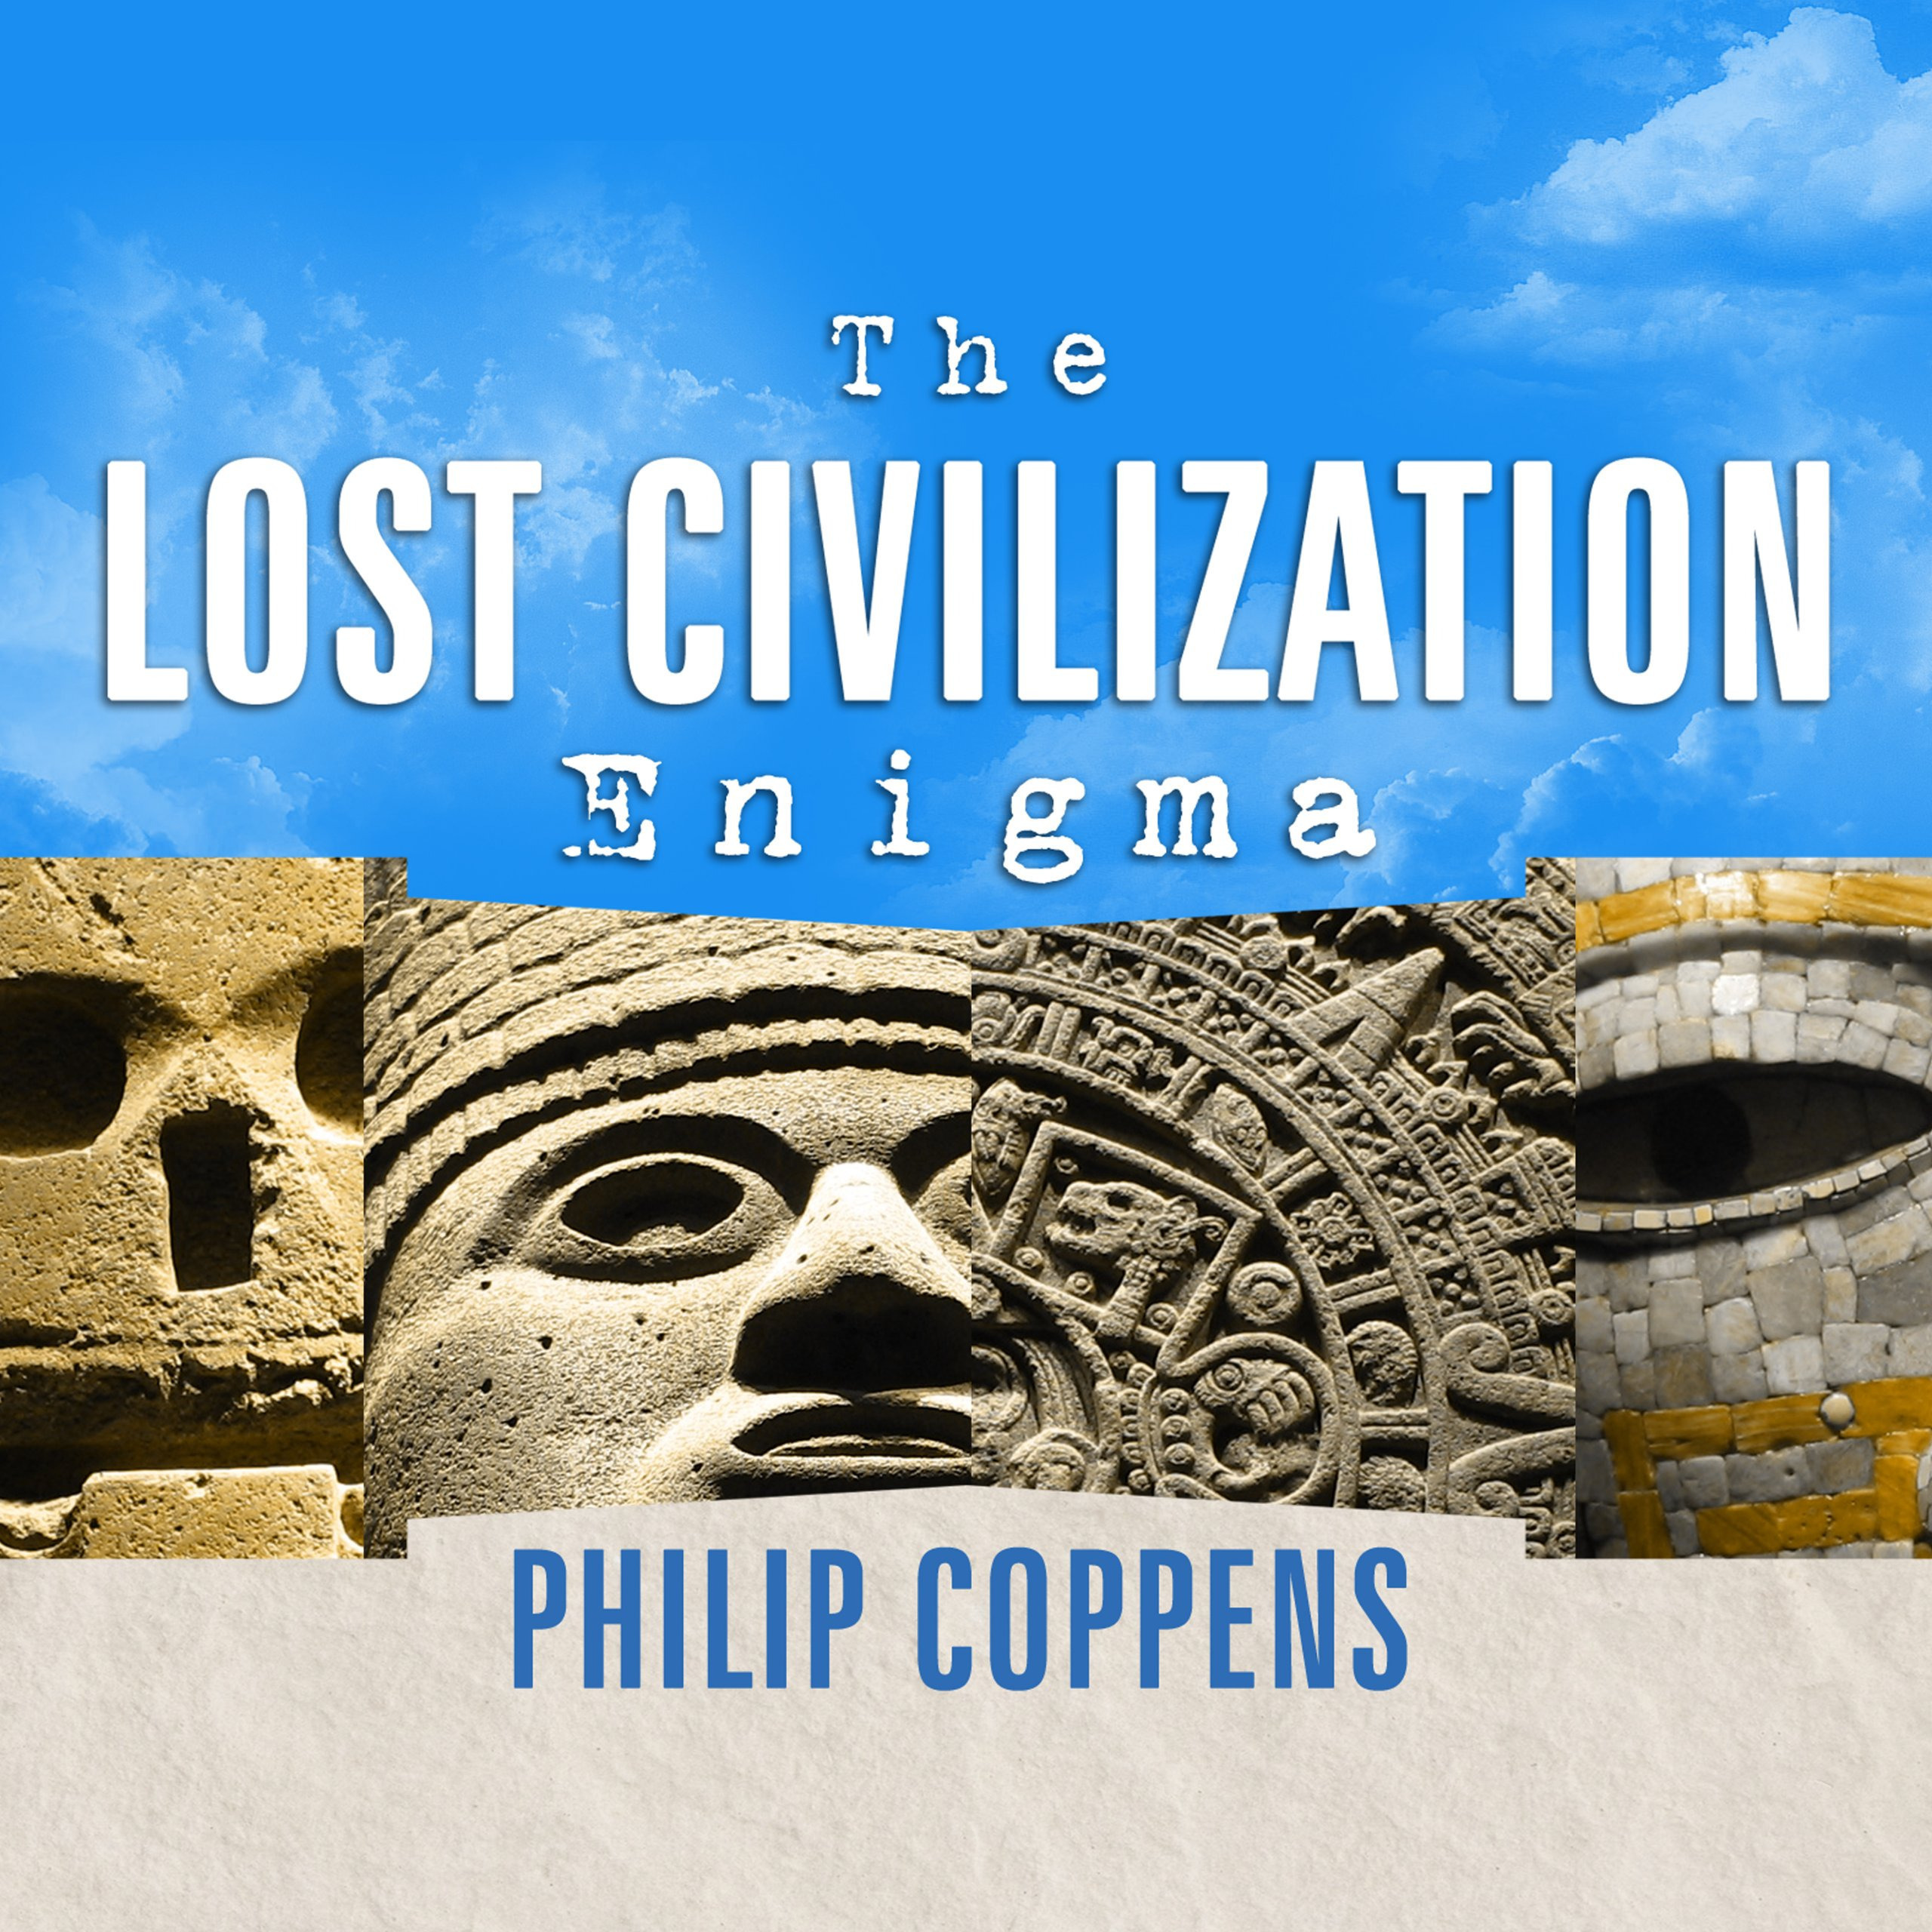 Printable The Lost Civilization Enigma: A New Inquiry into the Existence of Ancient Cities, Cultures, and Peoples Who Pre-Date Recorded History Audiobook Cover Art